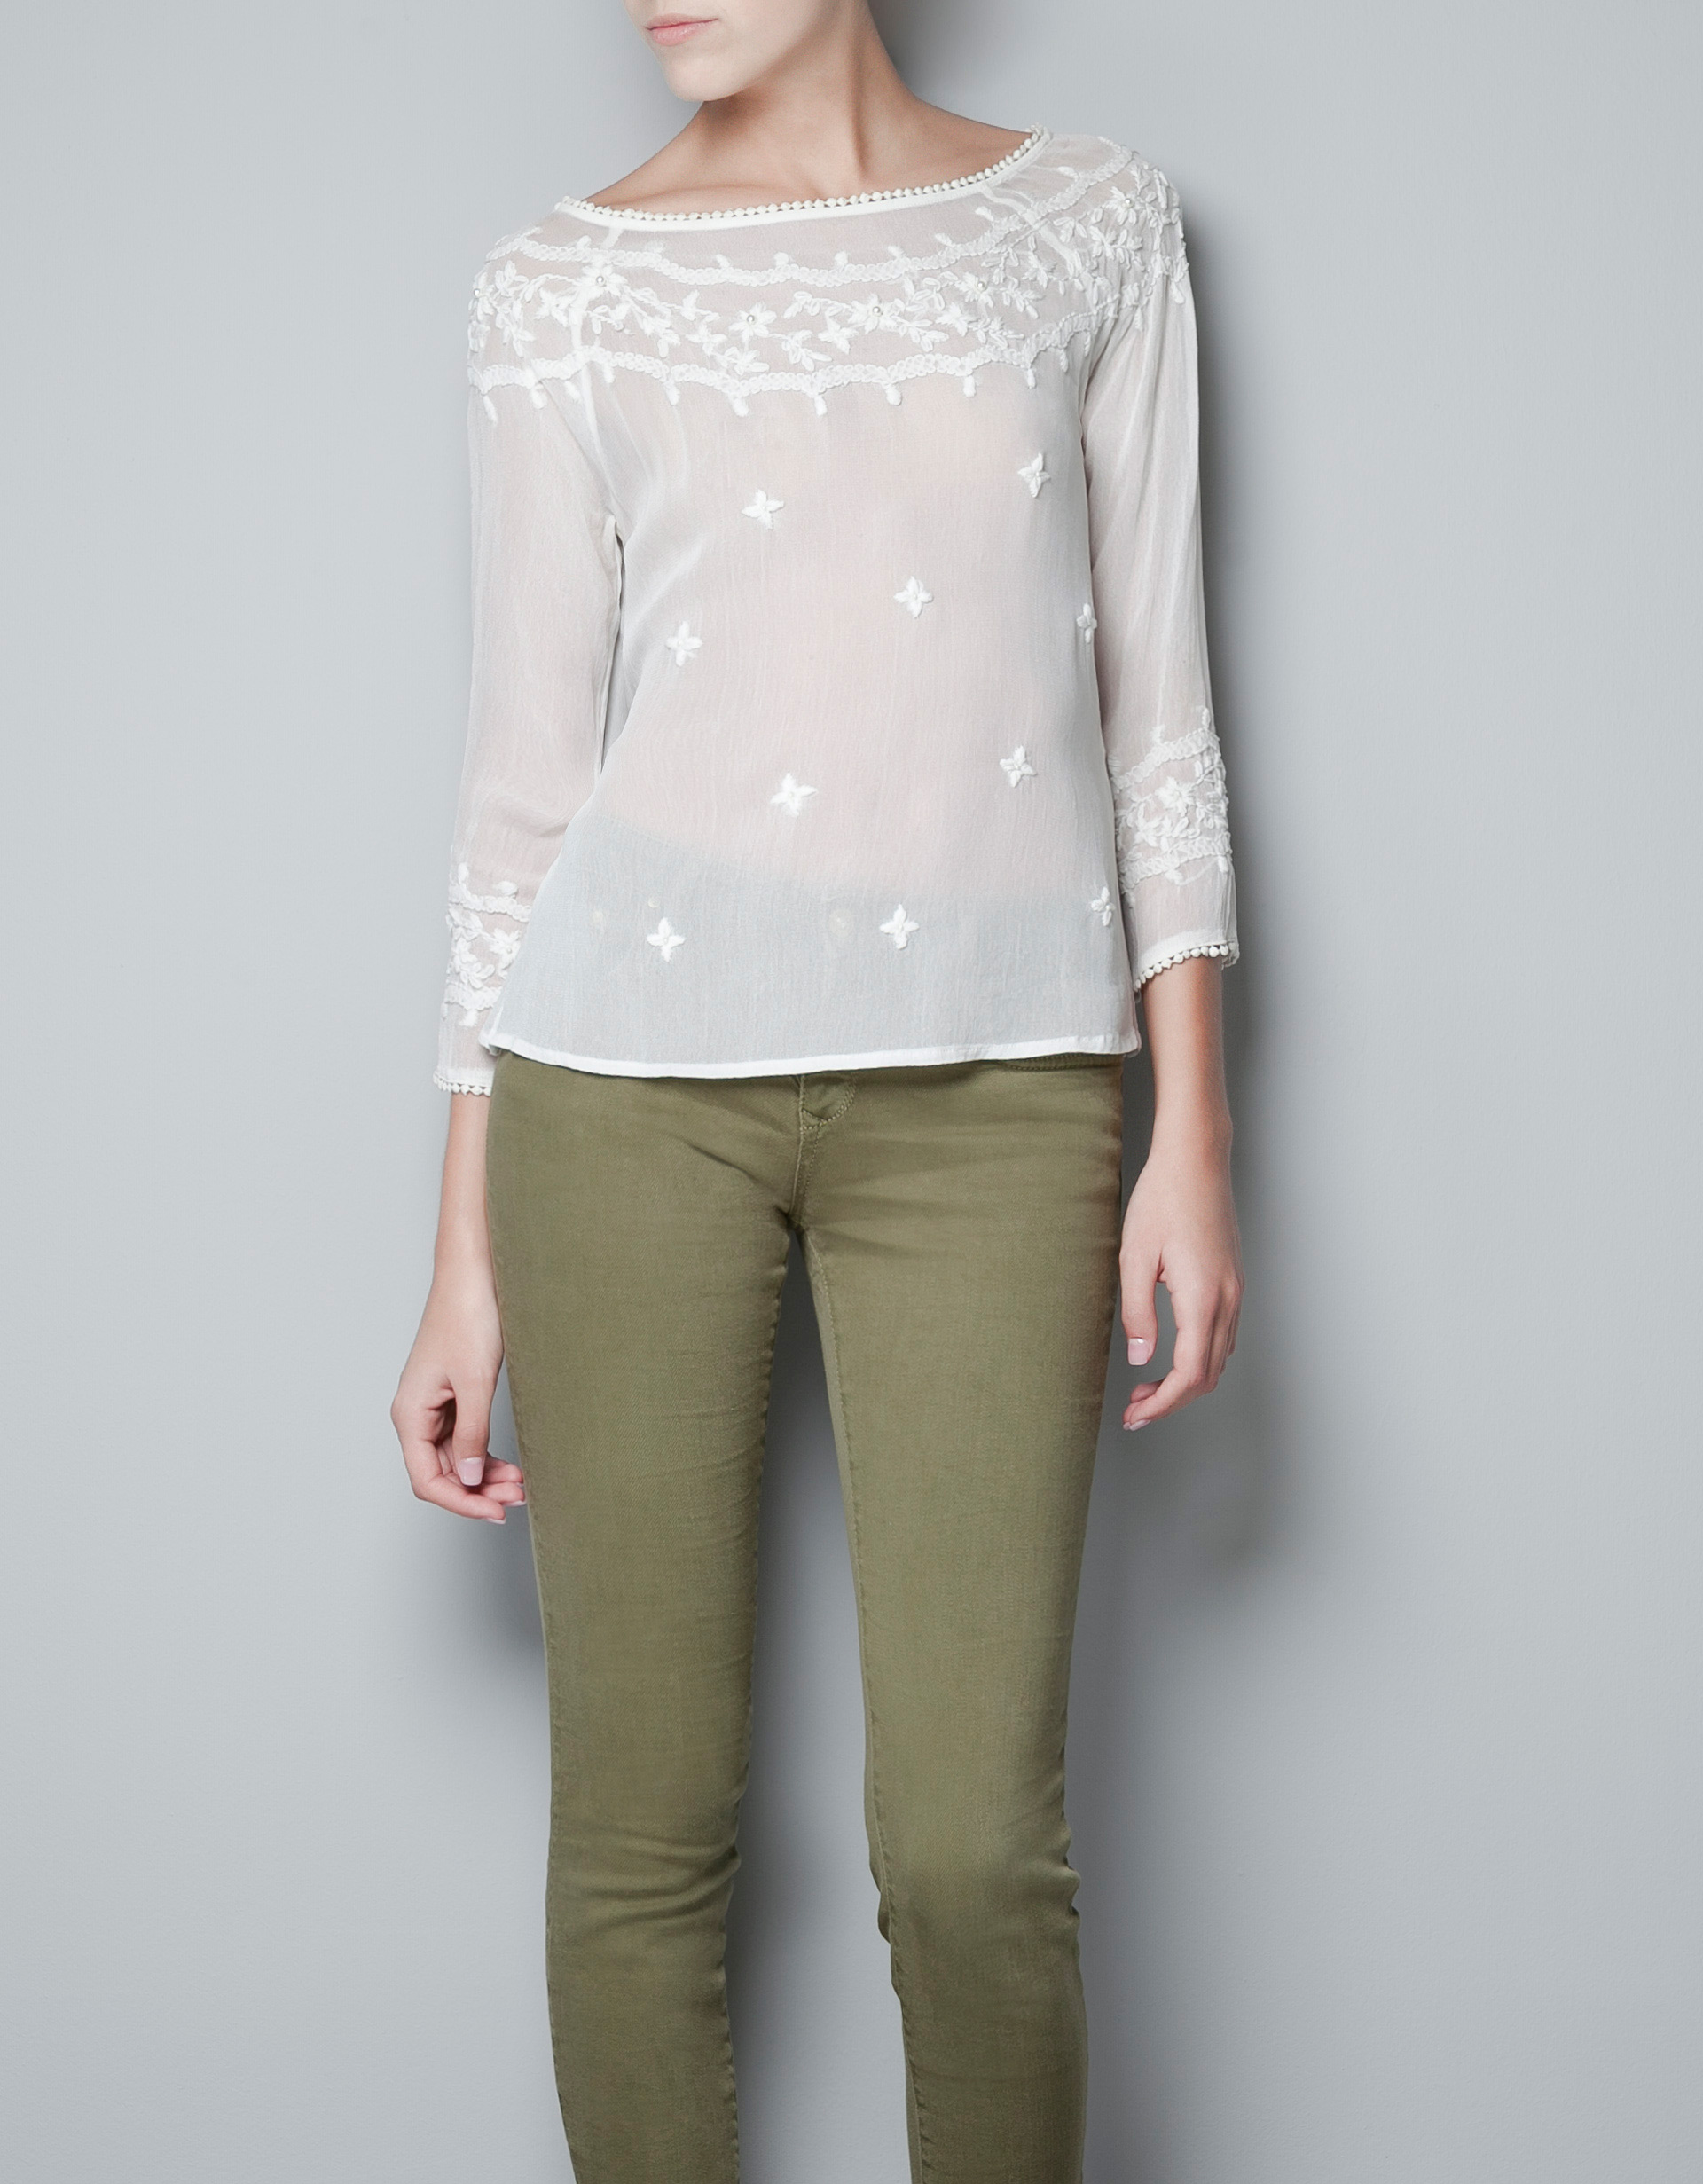 Zara Pearl Embroidered Blouse 12